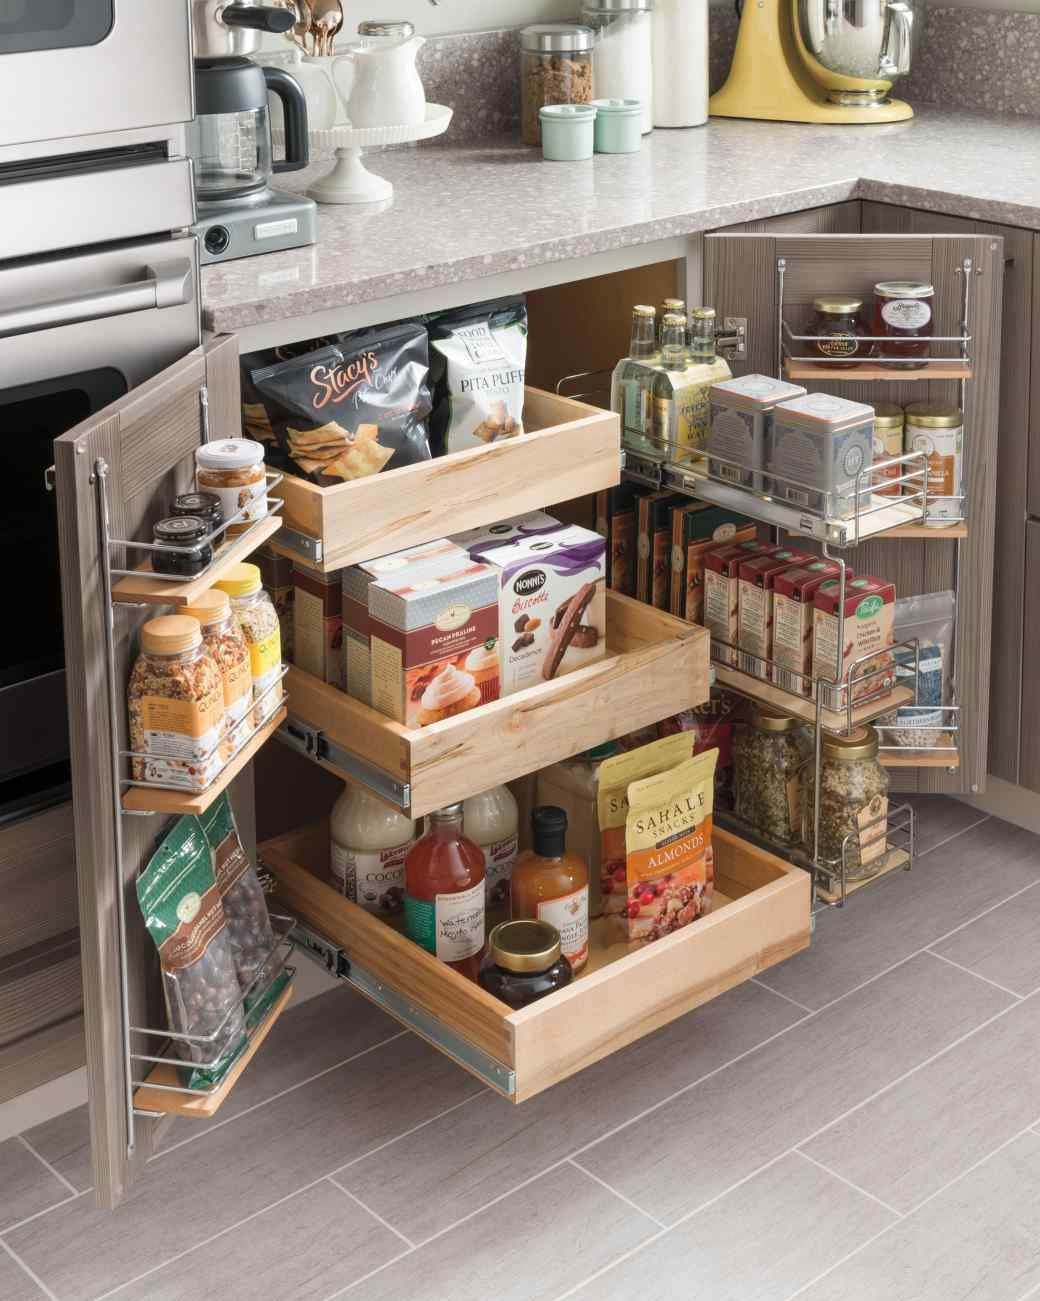 Small kitchen storage ideas for a more efficient space Kitchen under cabinet storage ideas